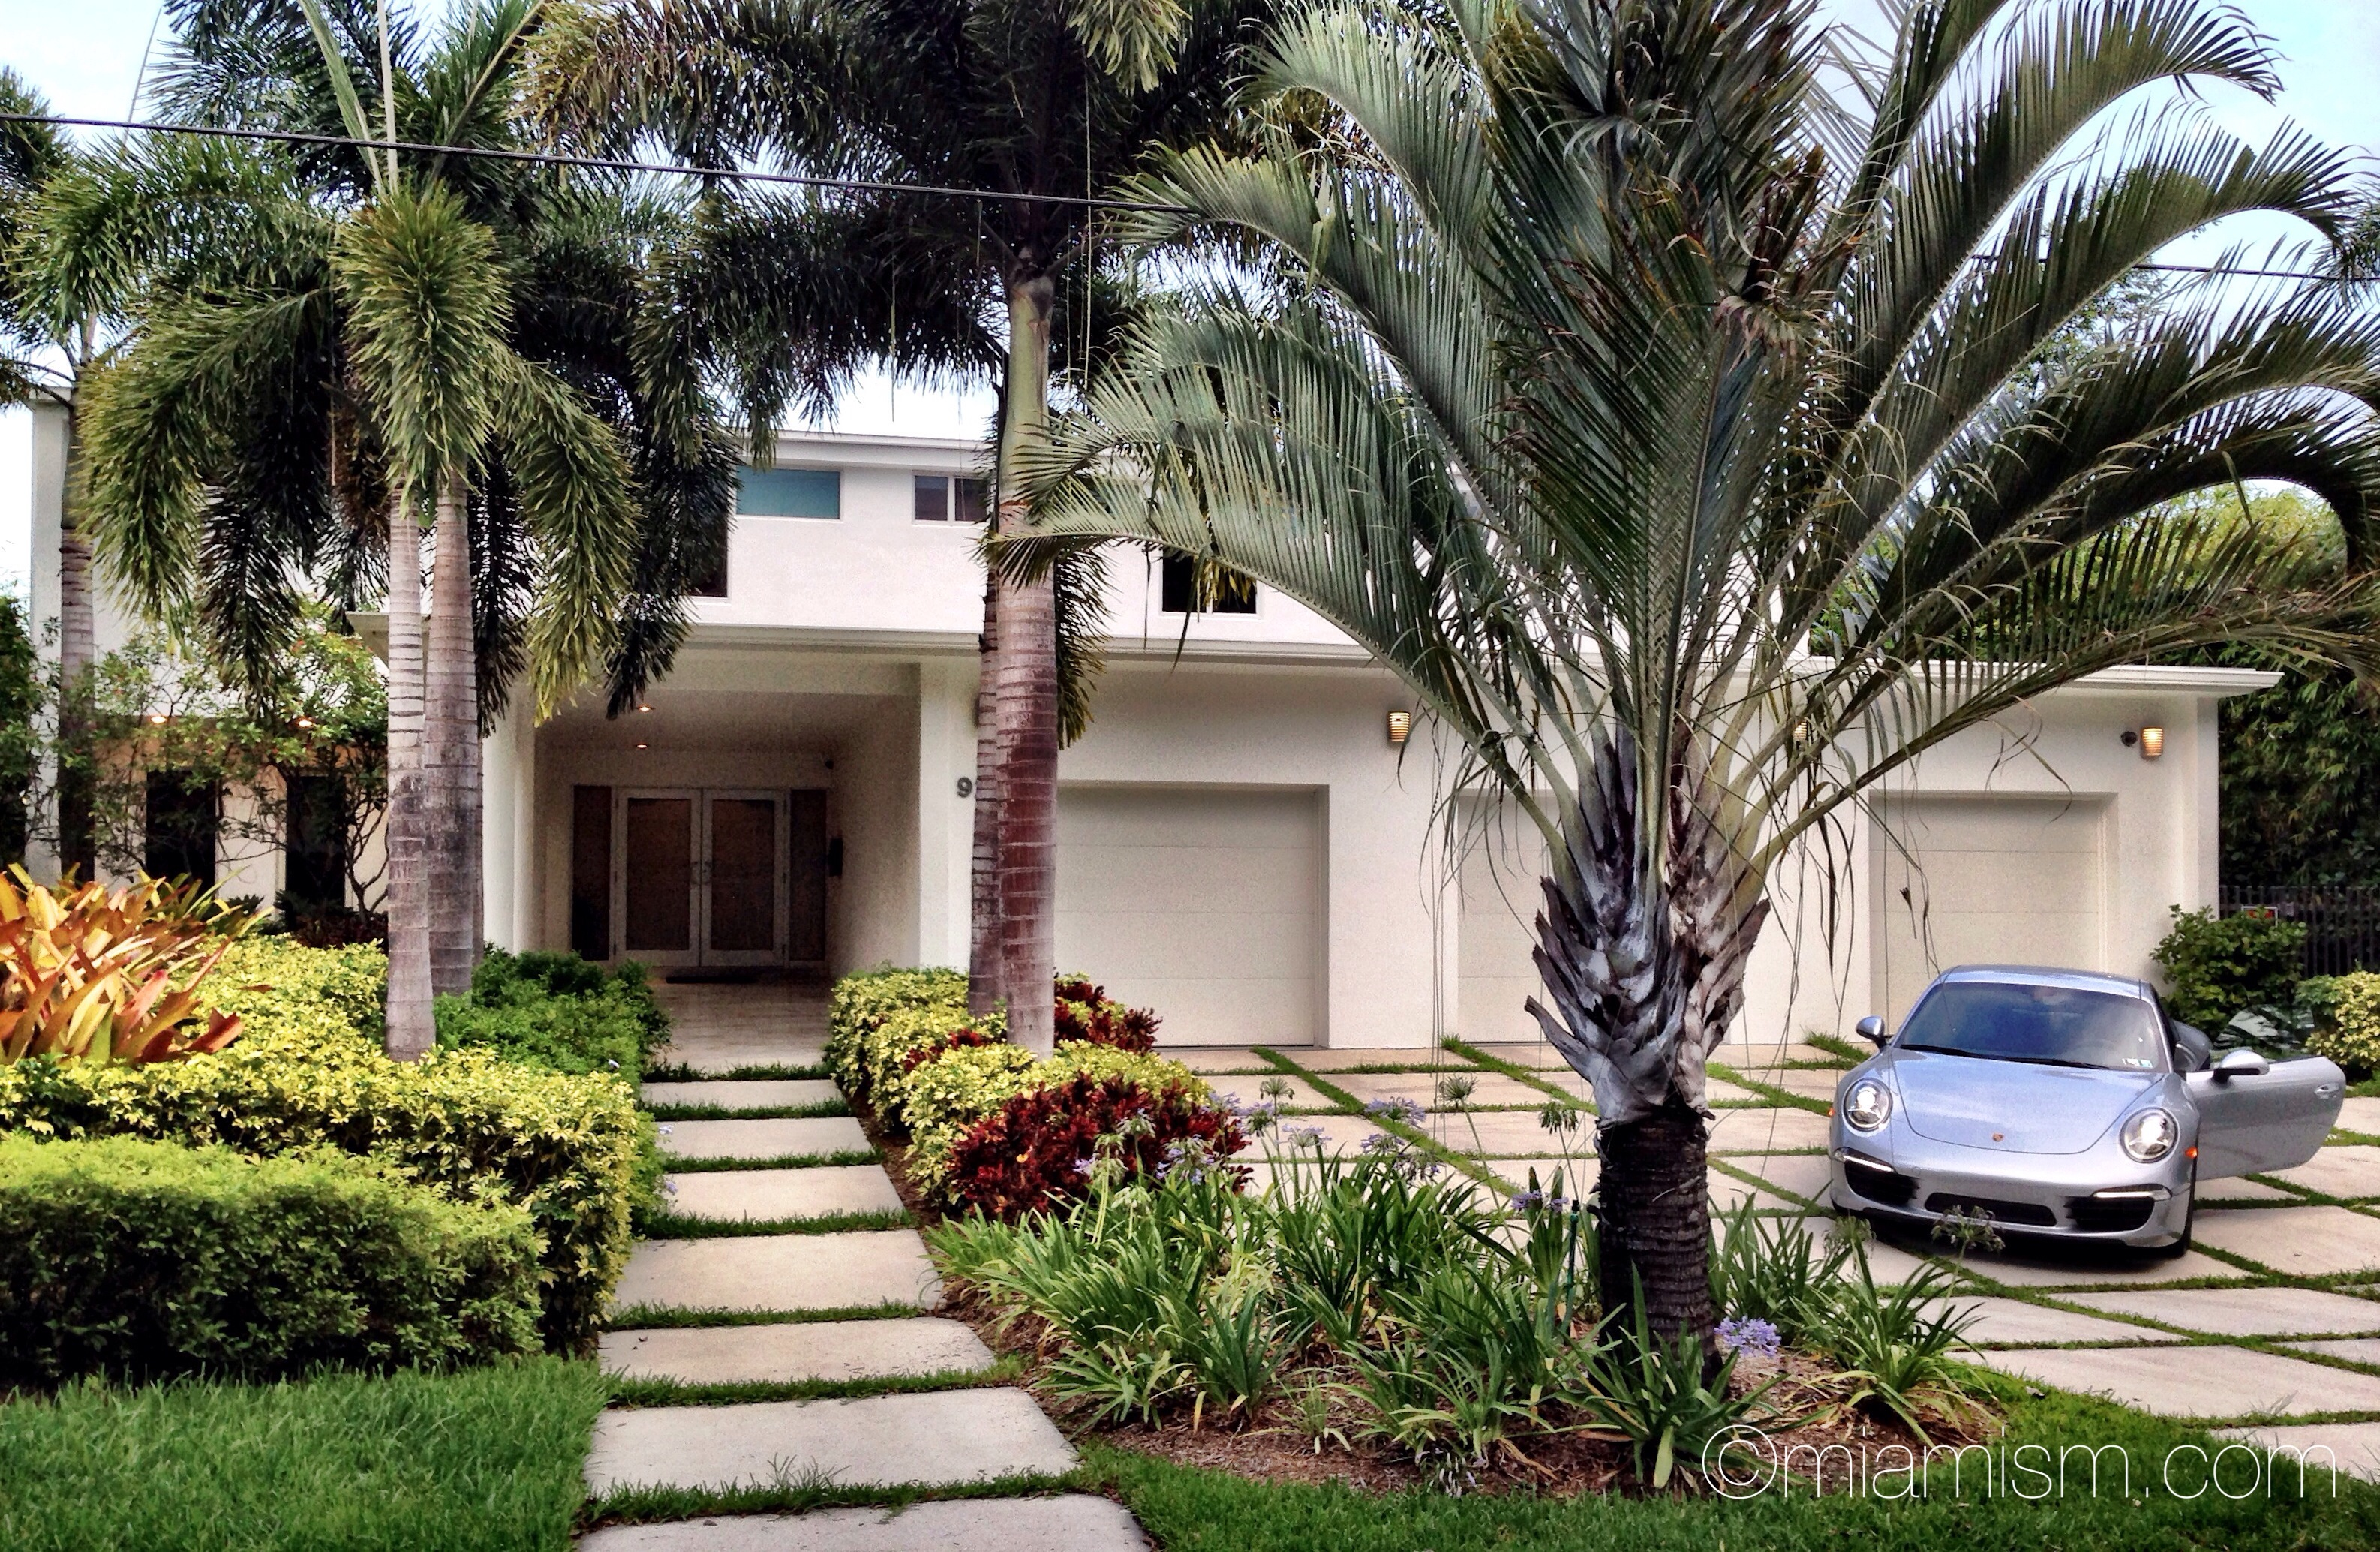 Bayview house miami shores real estate for Luxury houses in miami for sale